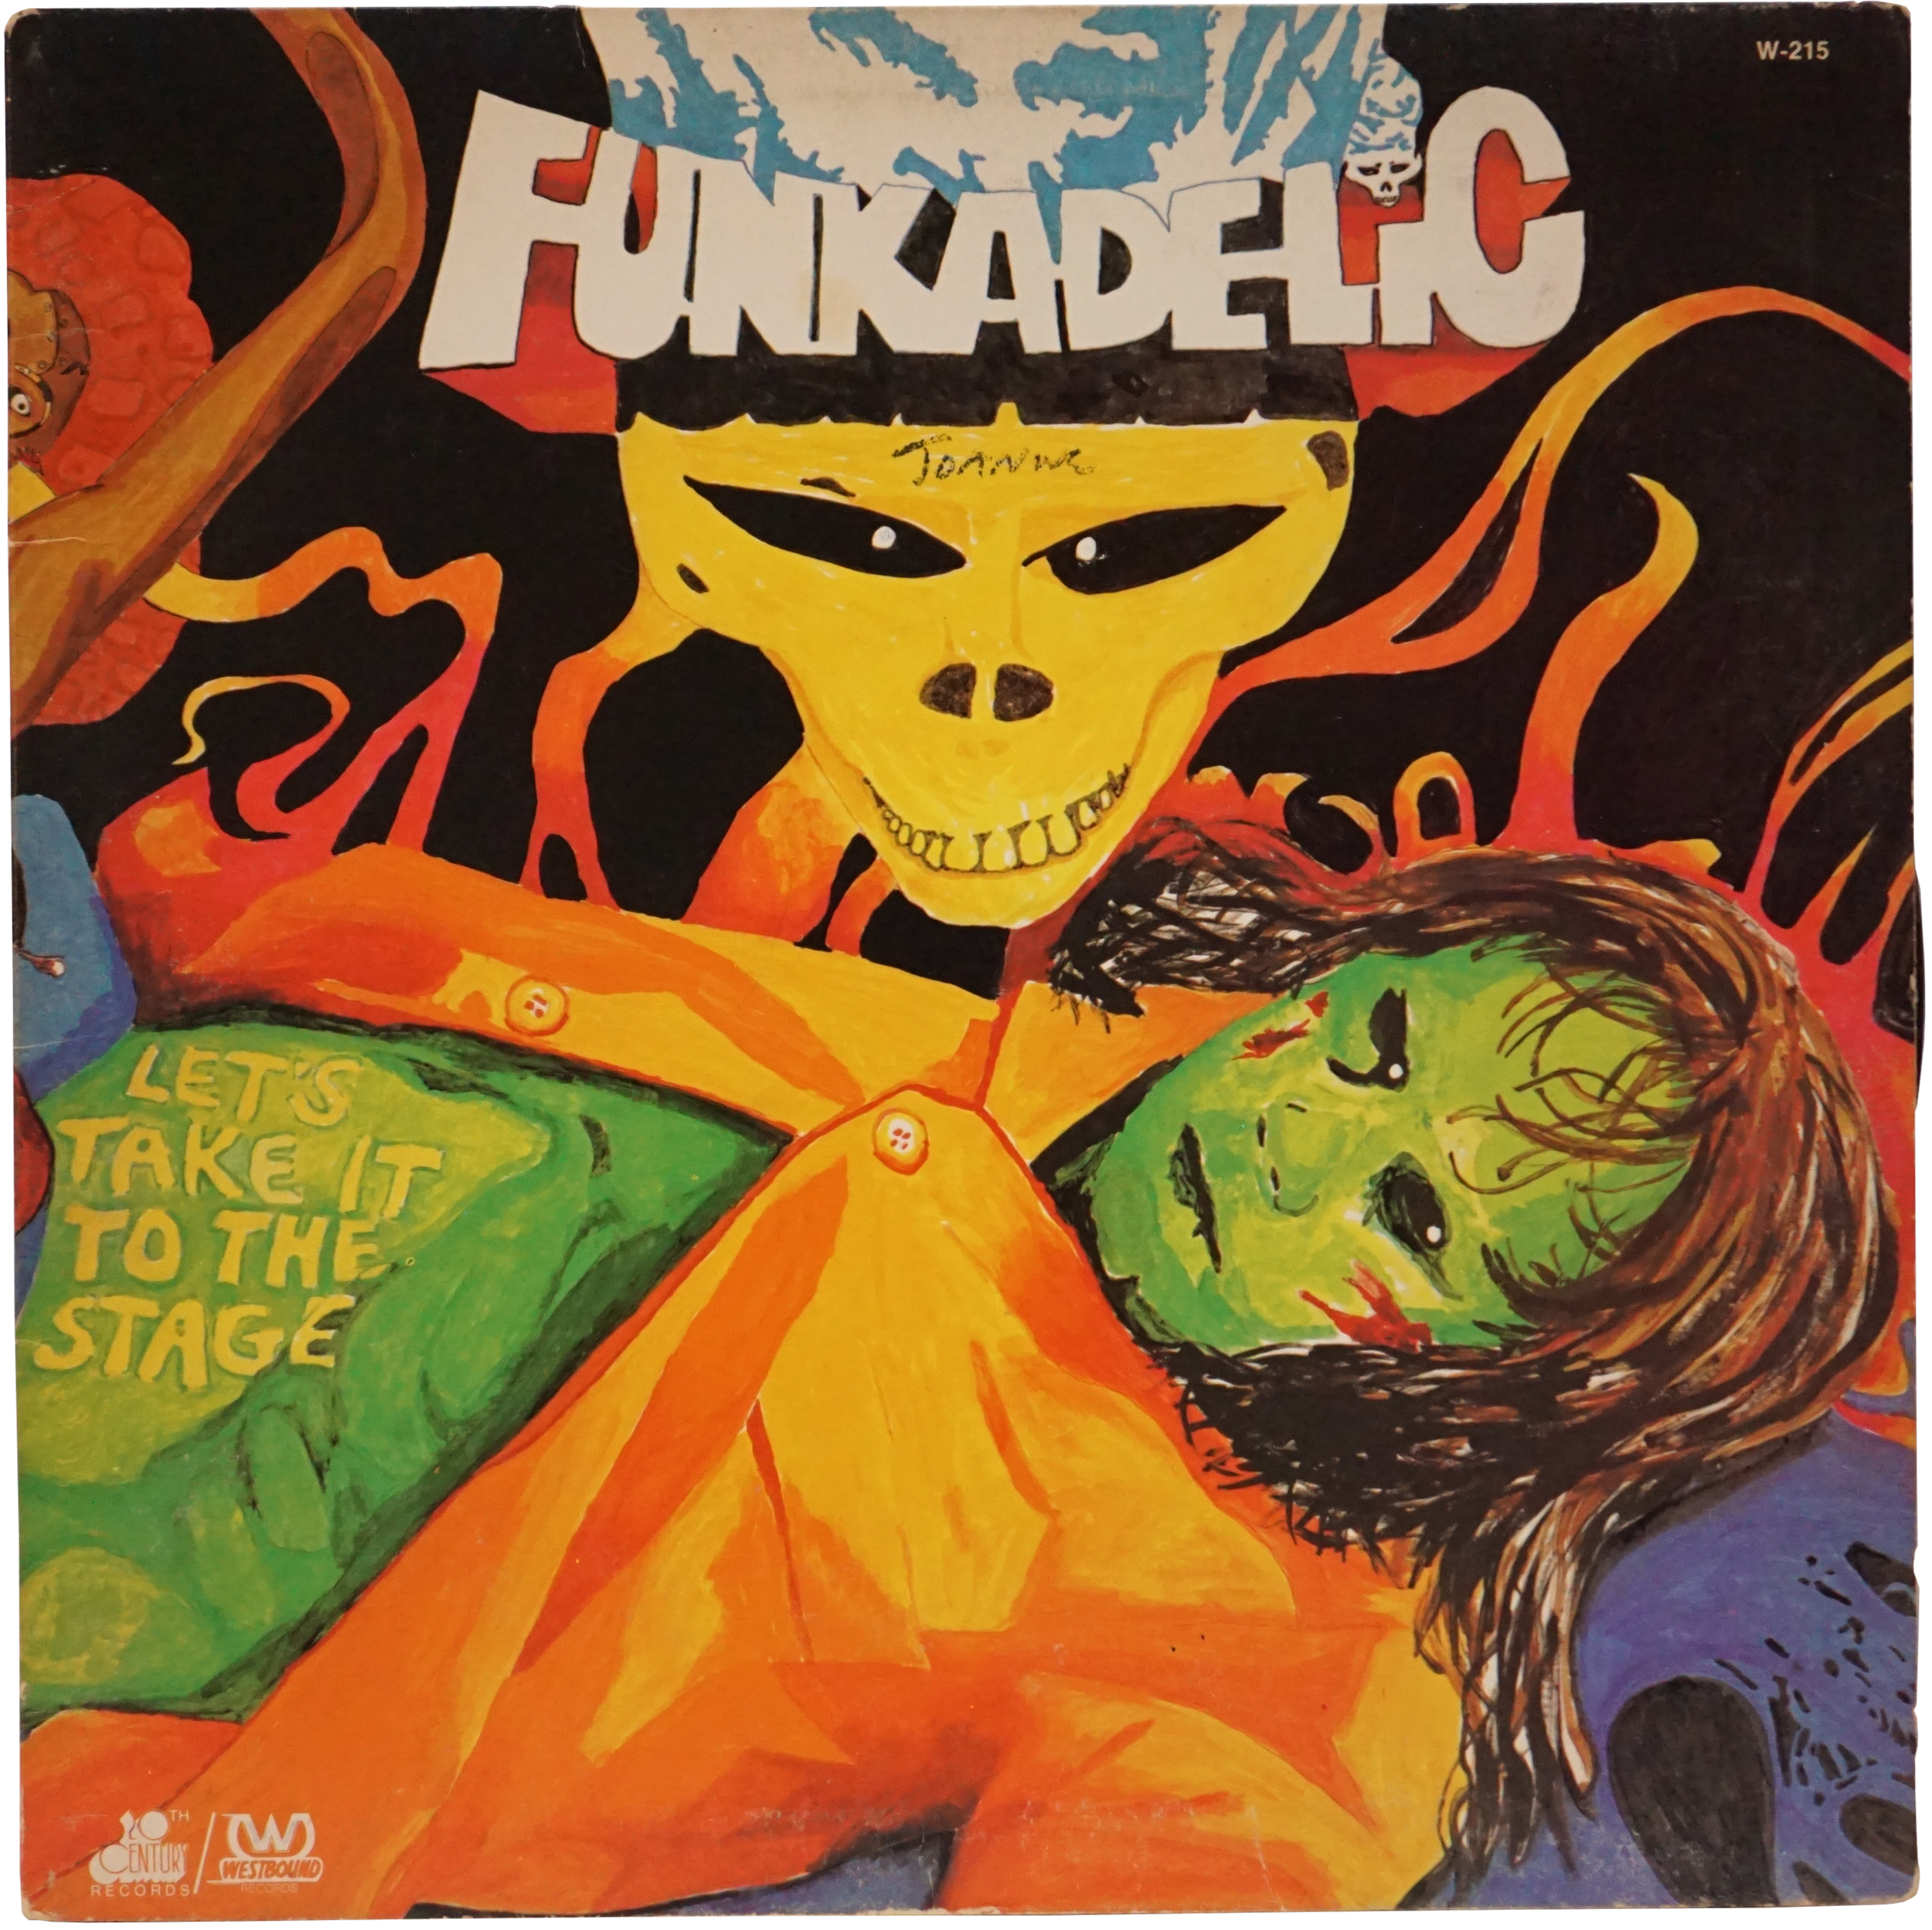 WLWLTDOO-1975-LP-FUNKADELIC-LETS_TAKE_IT_TO_THE_STAGE-FRONT-W125.png